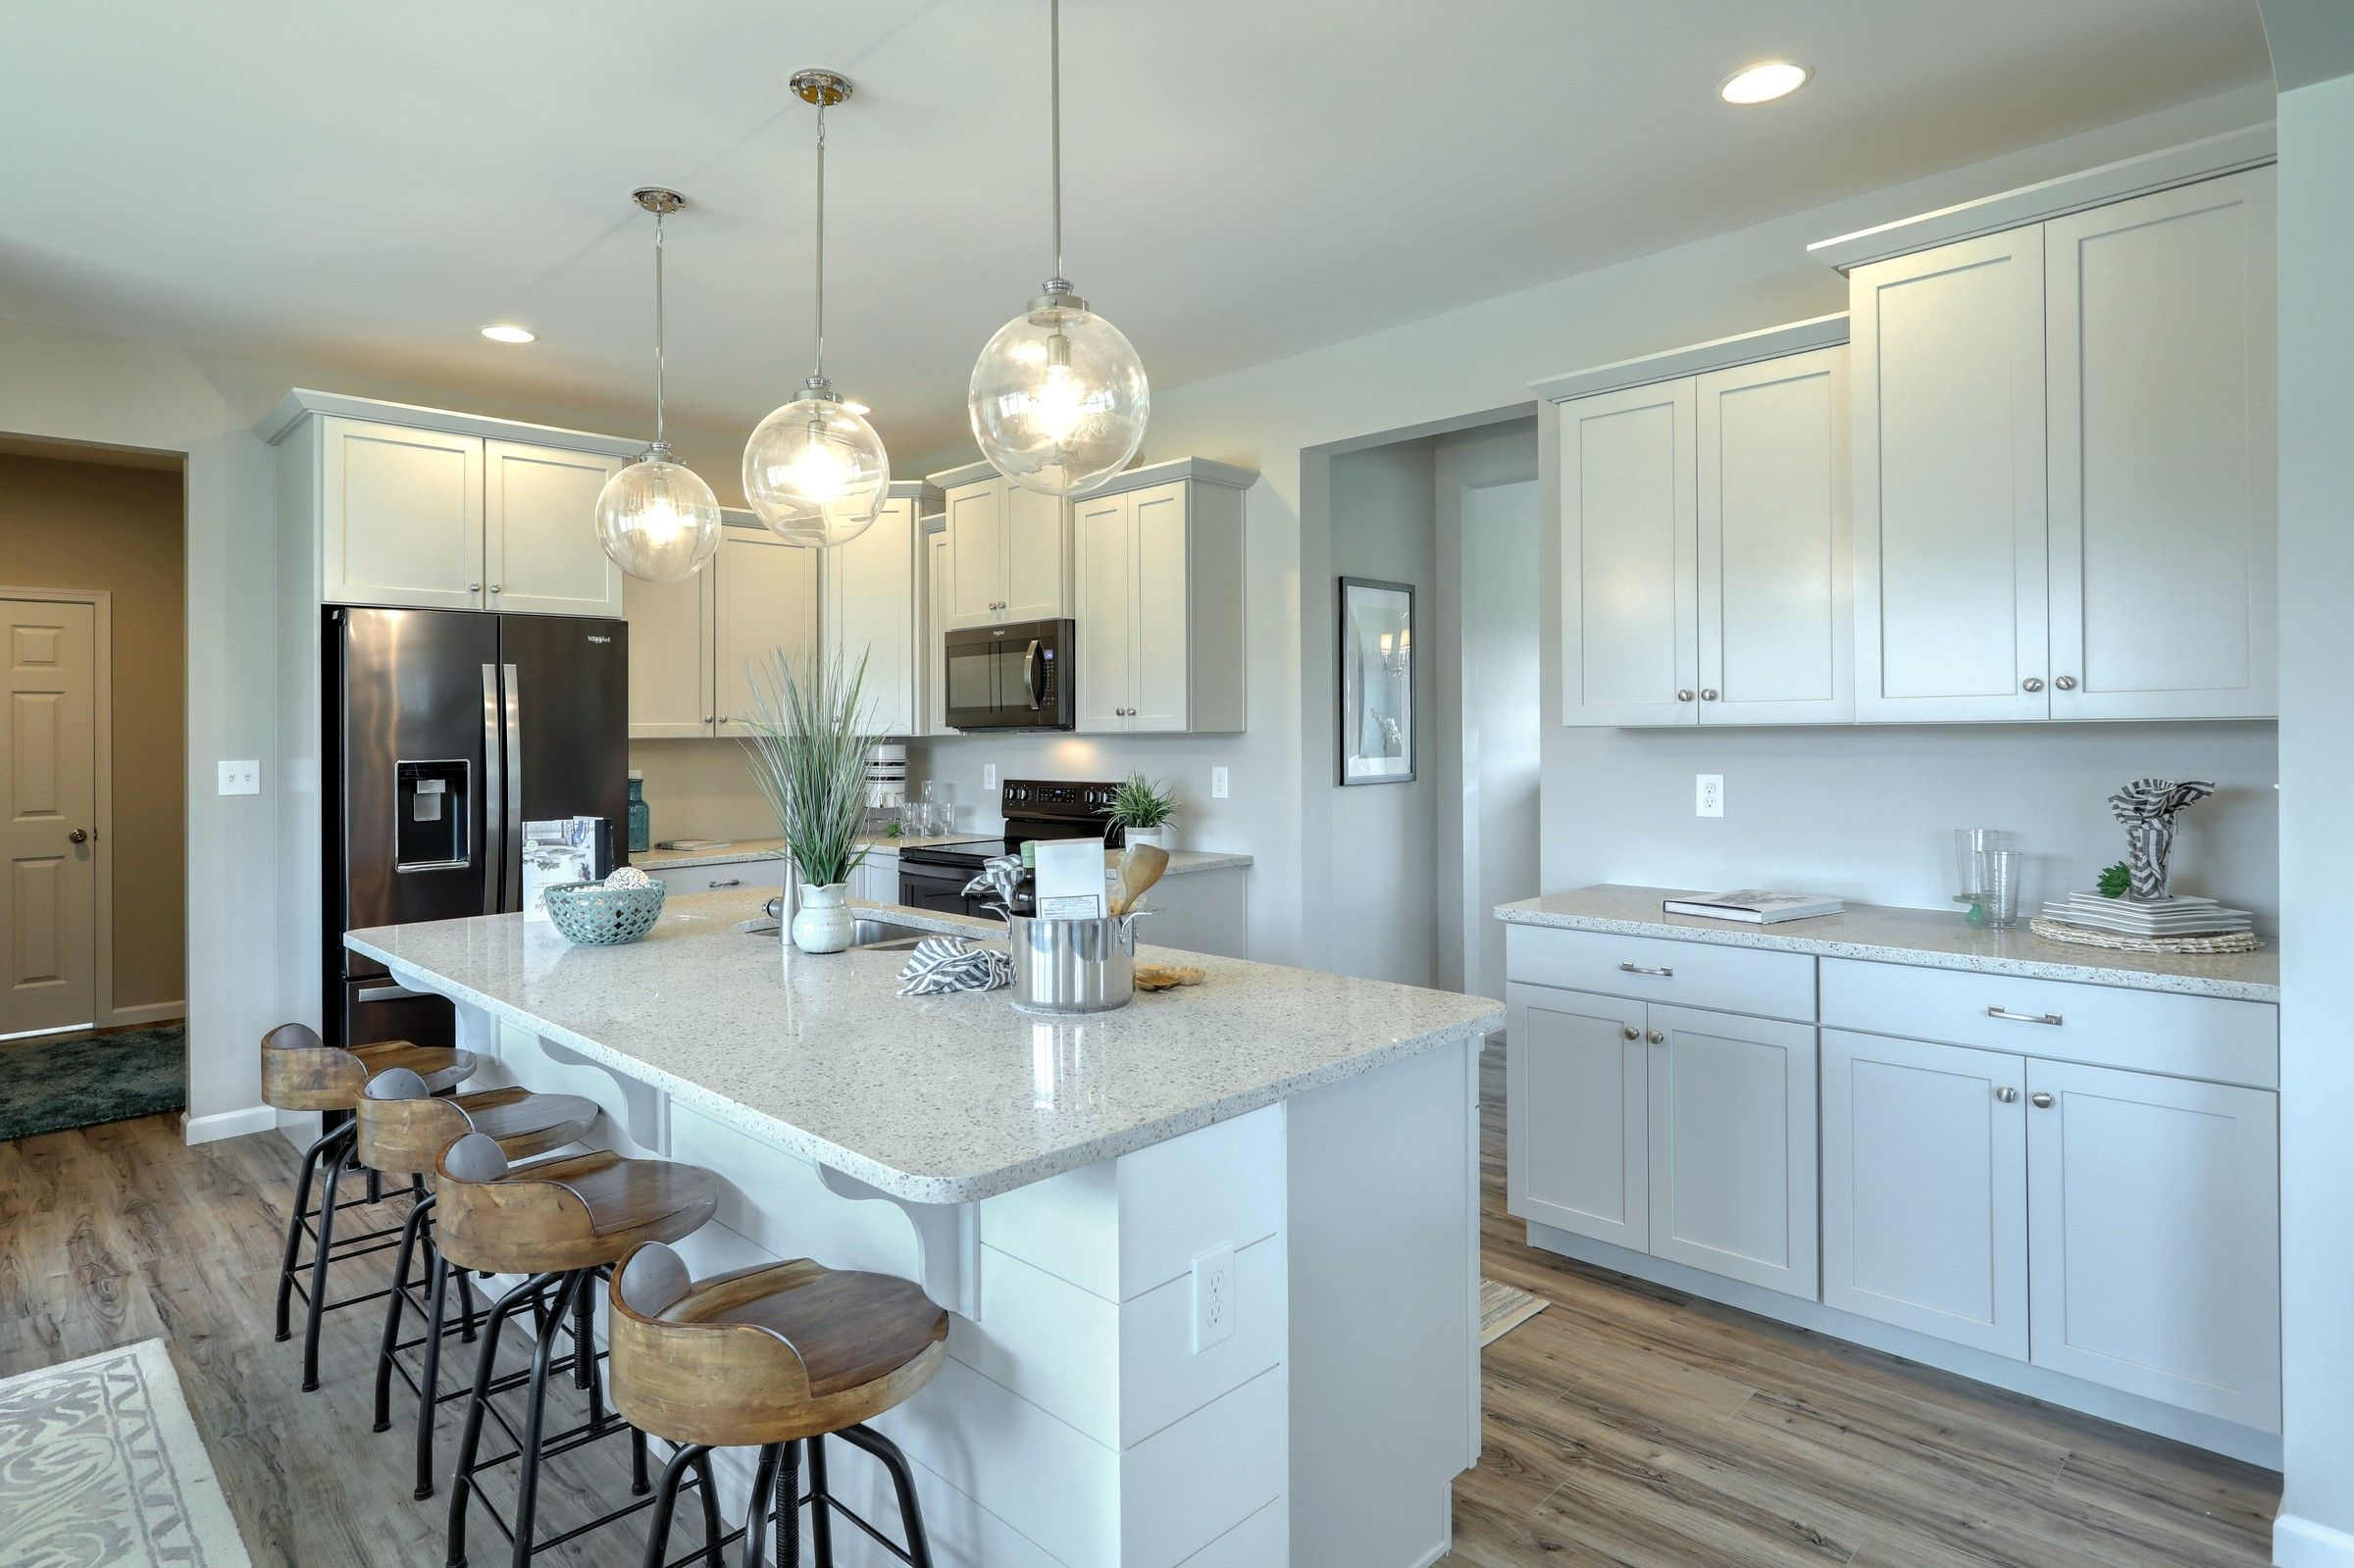 Kitchen featured in the Parker Traditional By Keystone Custom Homes in York, PA